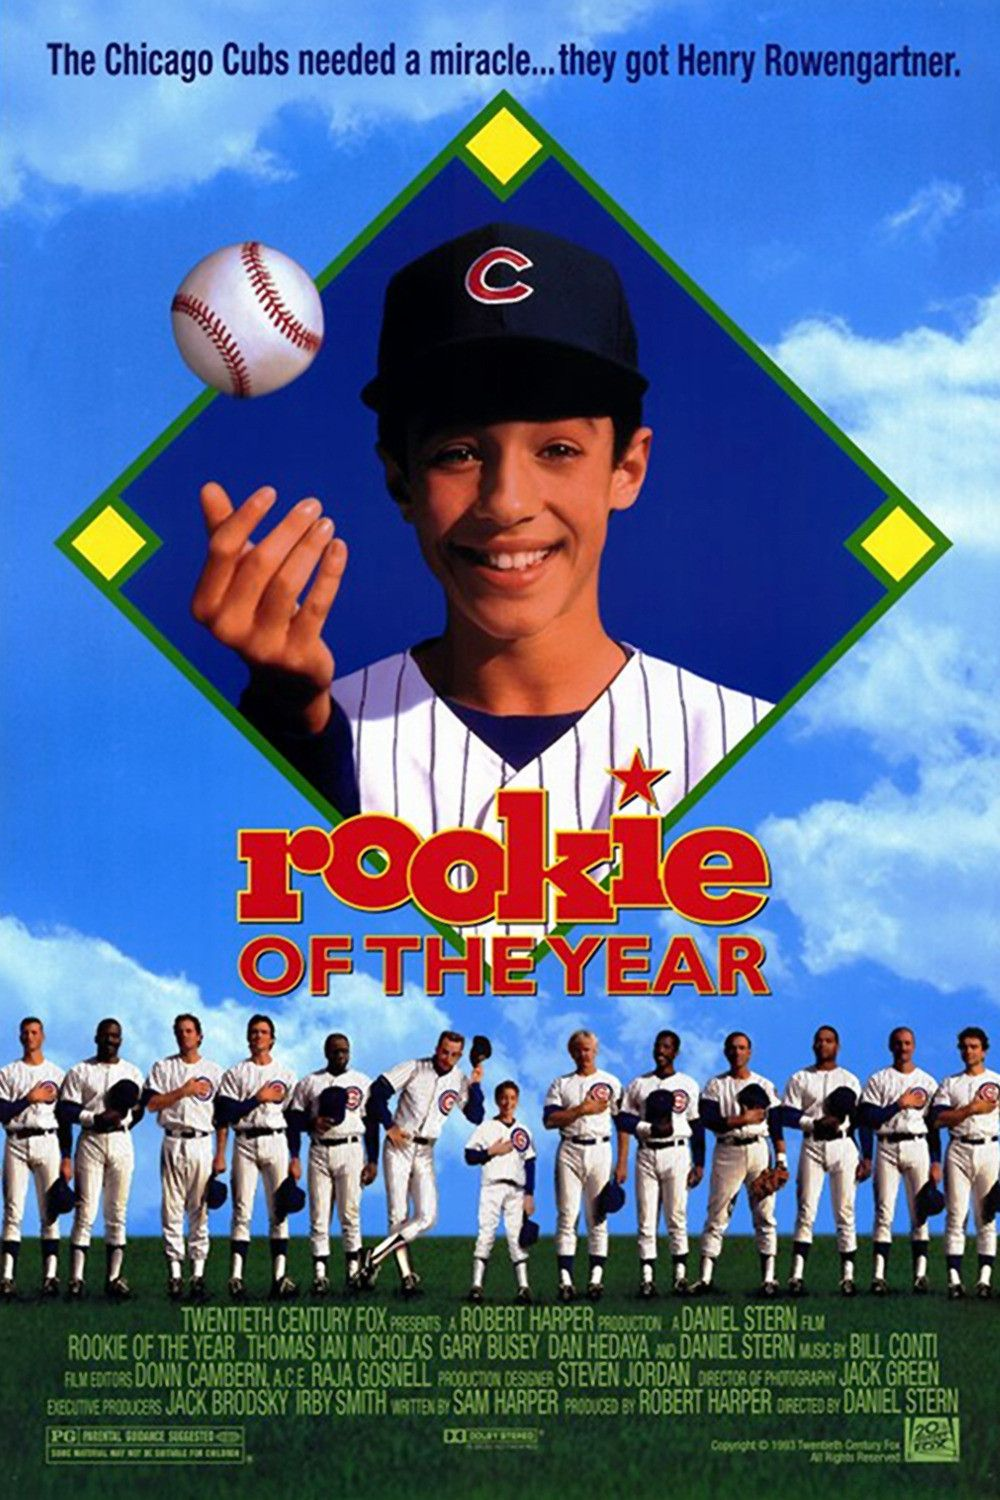 mlb rookie of the year 2020